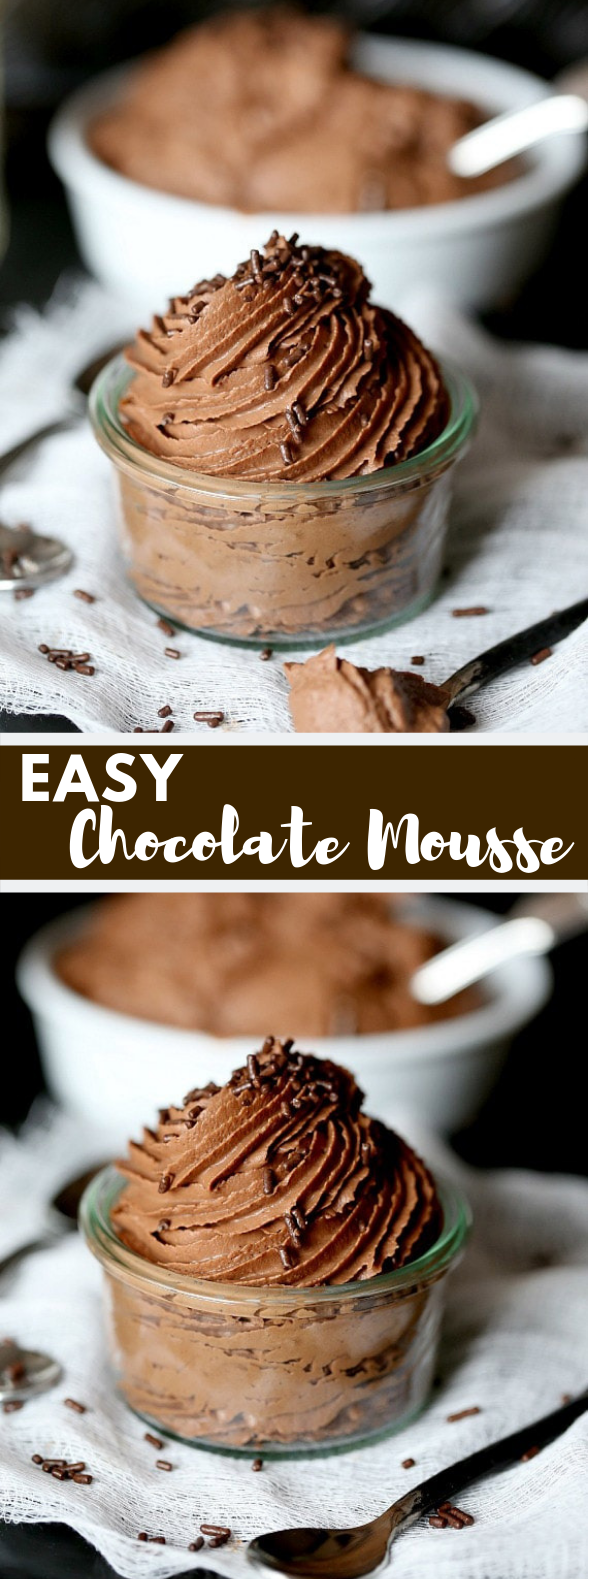 Easy Chocolate Mousse #Dessert #Cakes